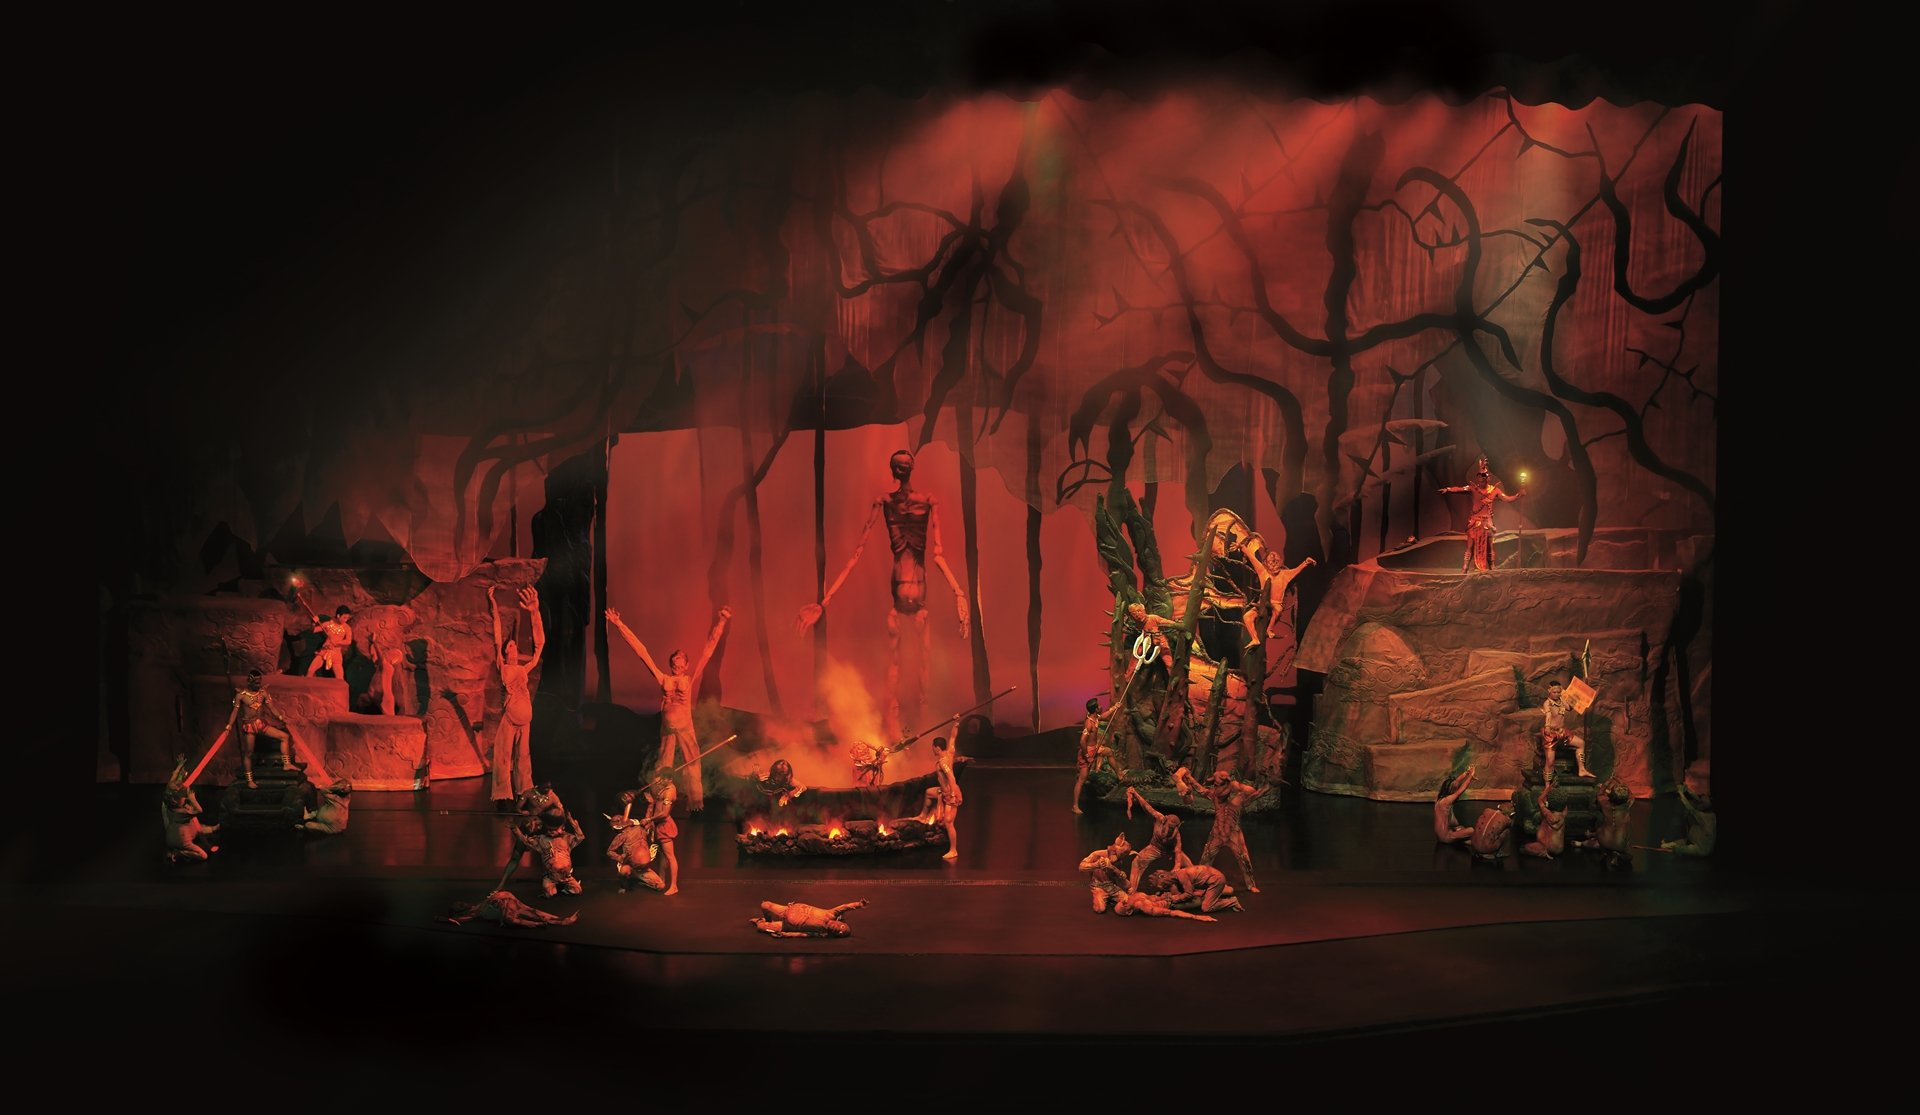 An overview of Hell during Siam Niramit Bangkok Show